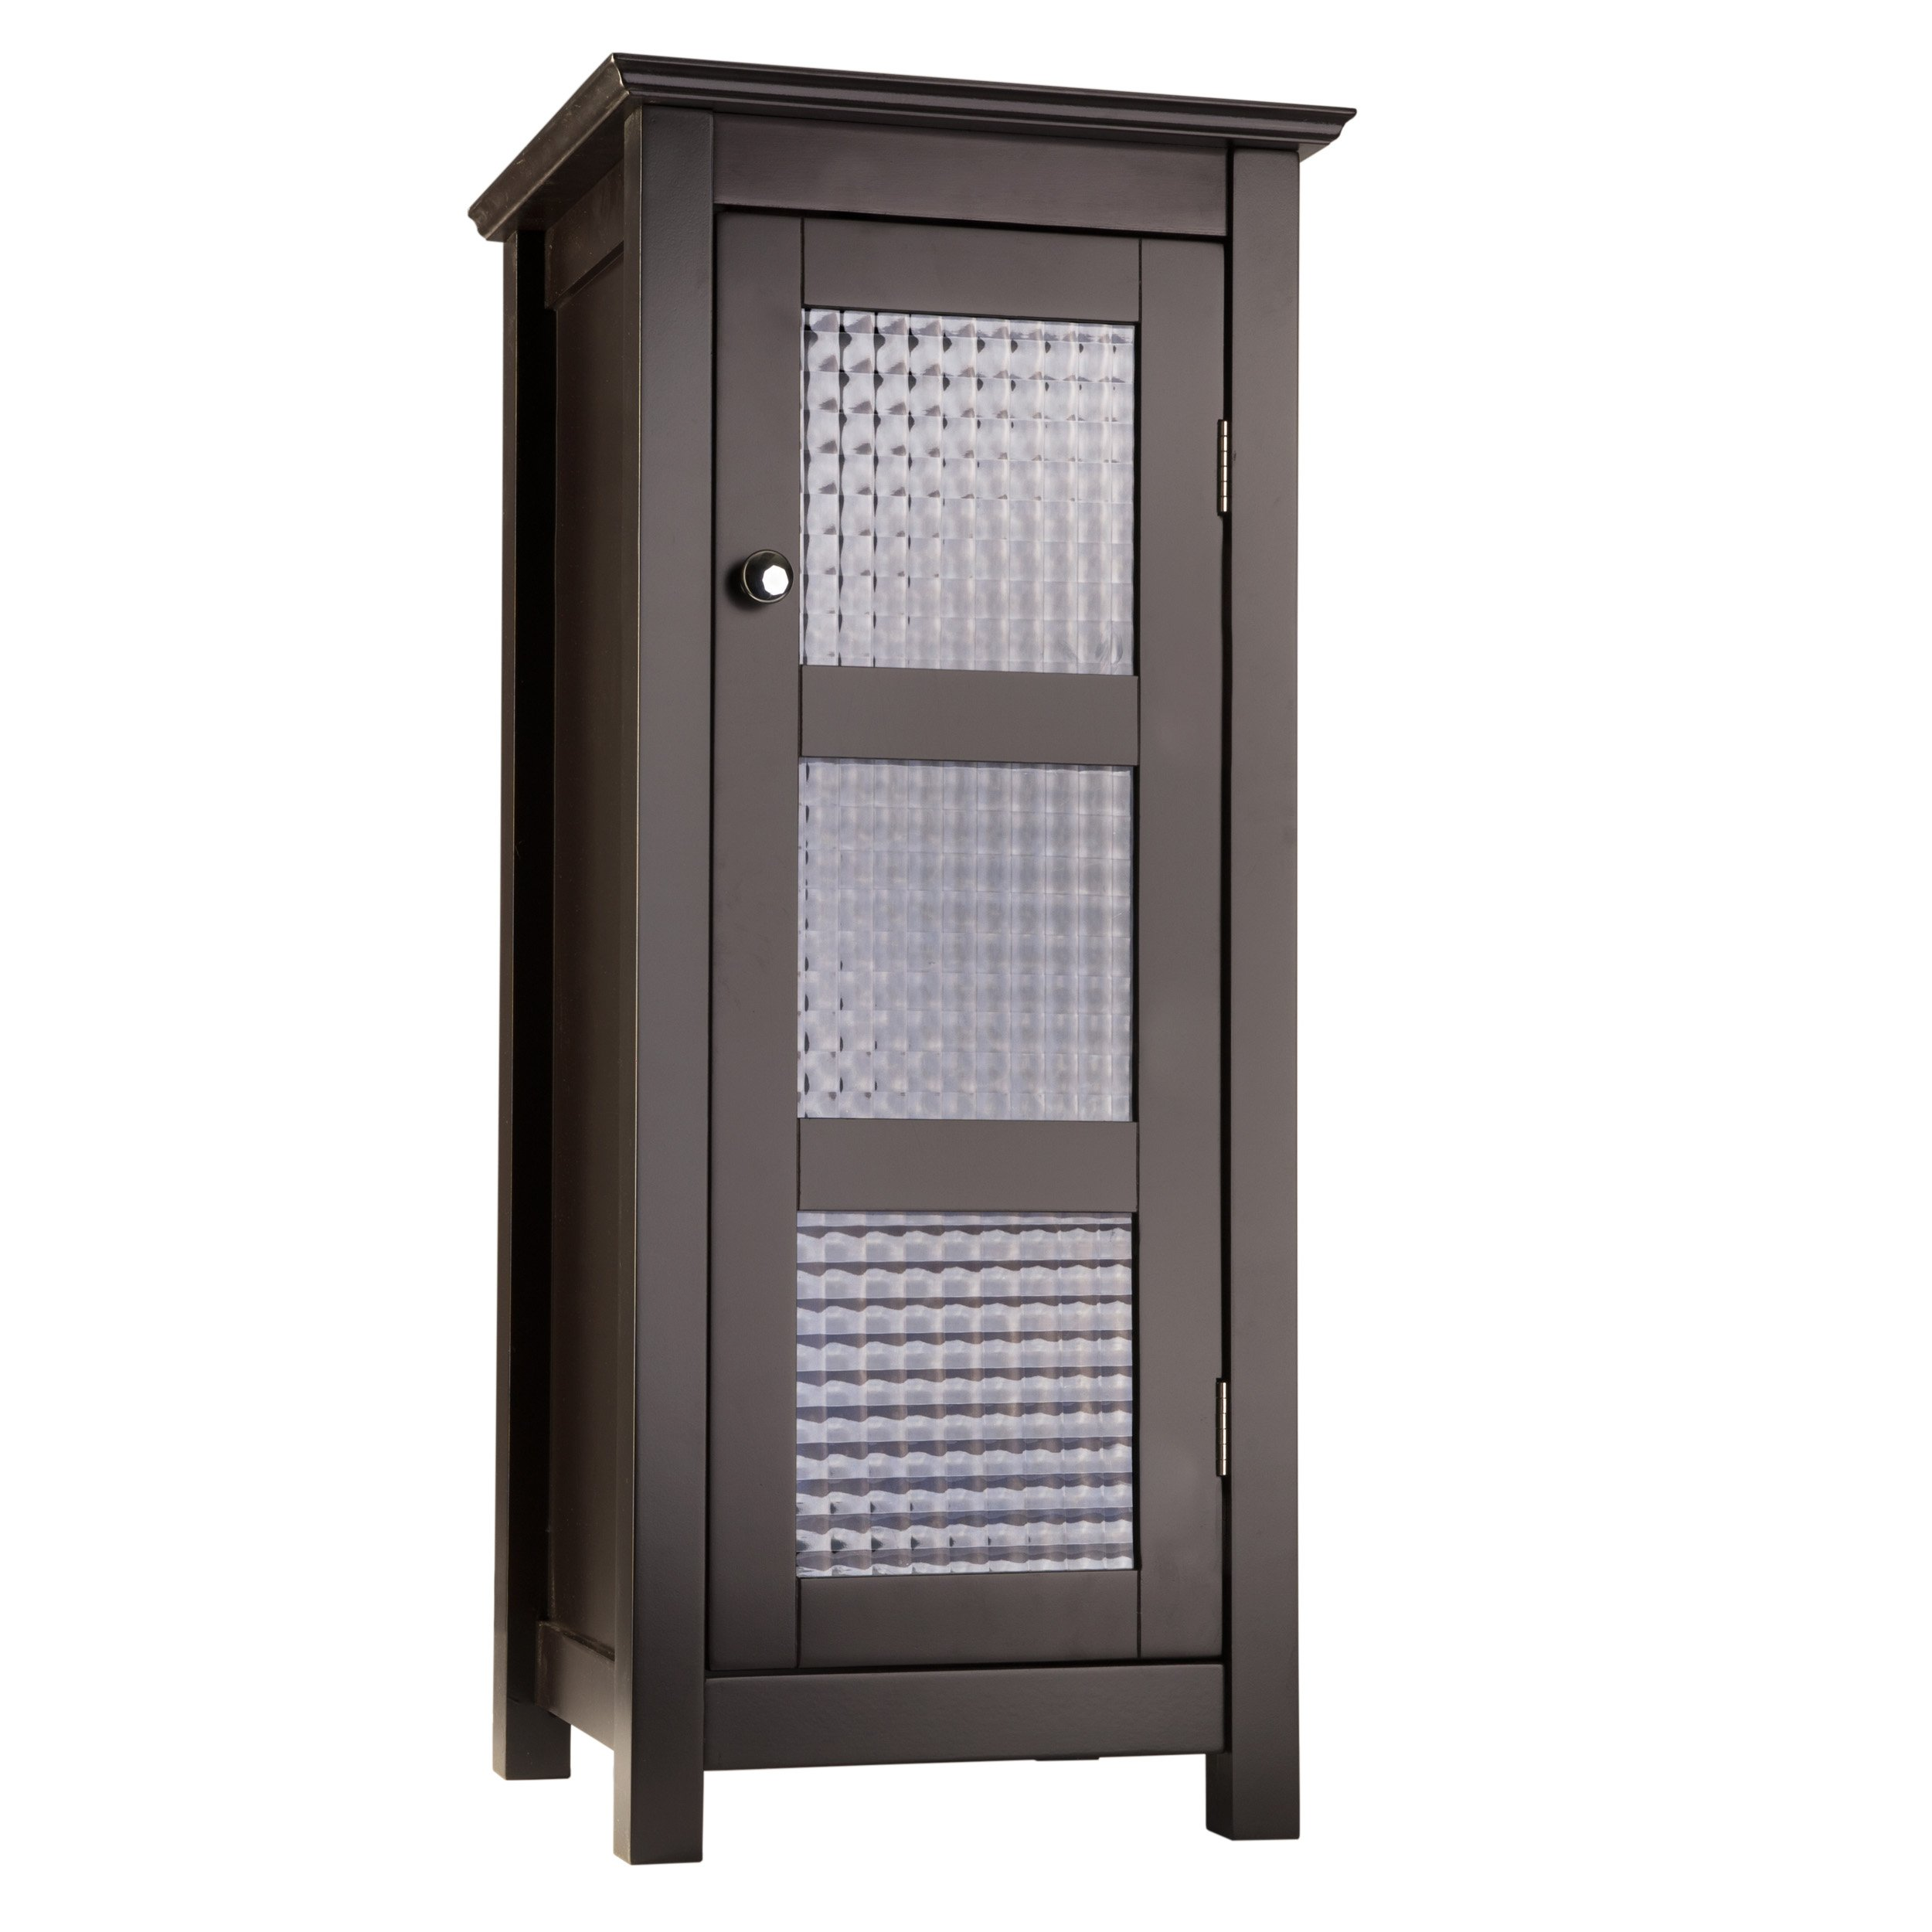 Elegant Home Fashions Chesterfield Collection Shelved Floor Cabinet with Glass-Paneled Door, Espresso by Elegant Home Fashions